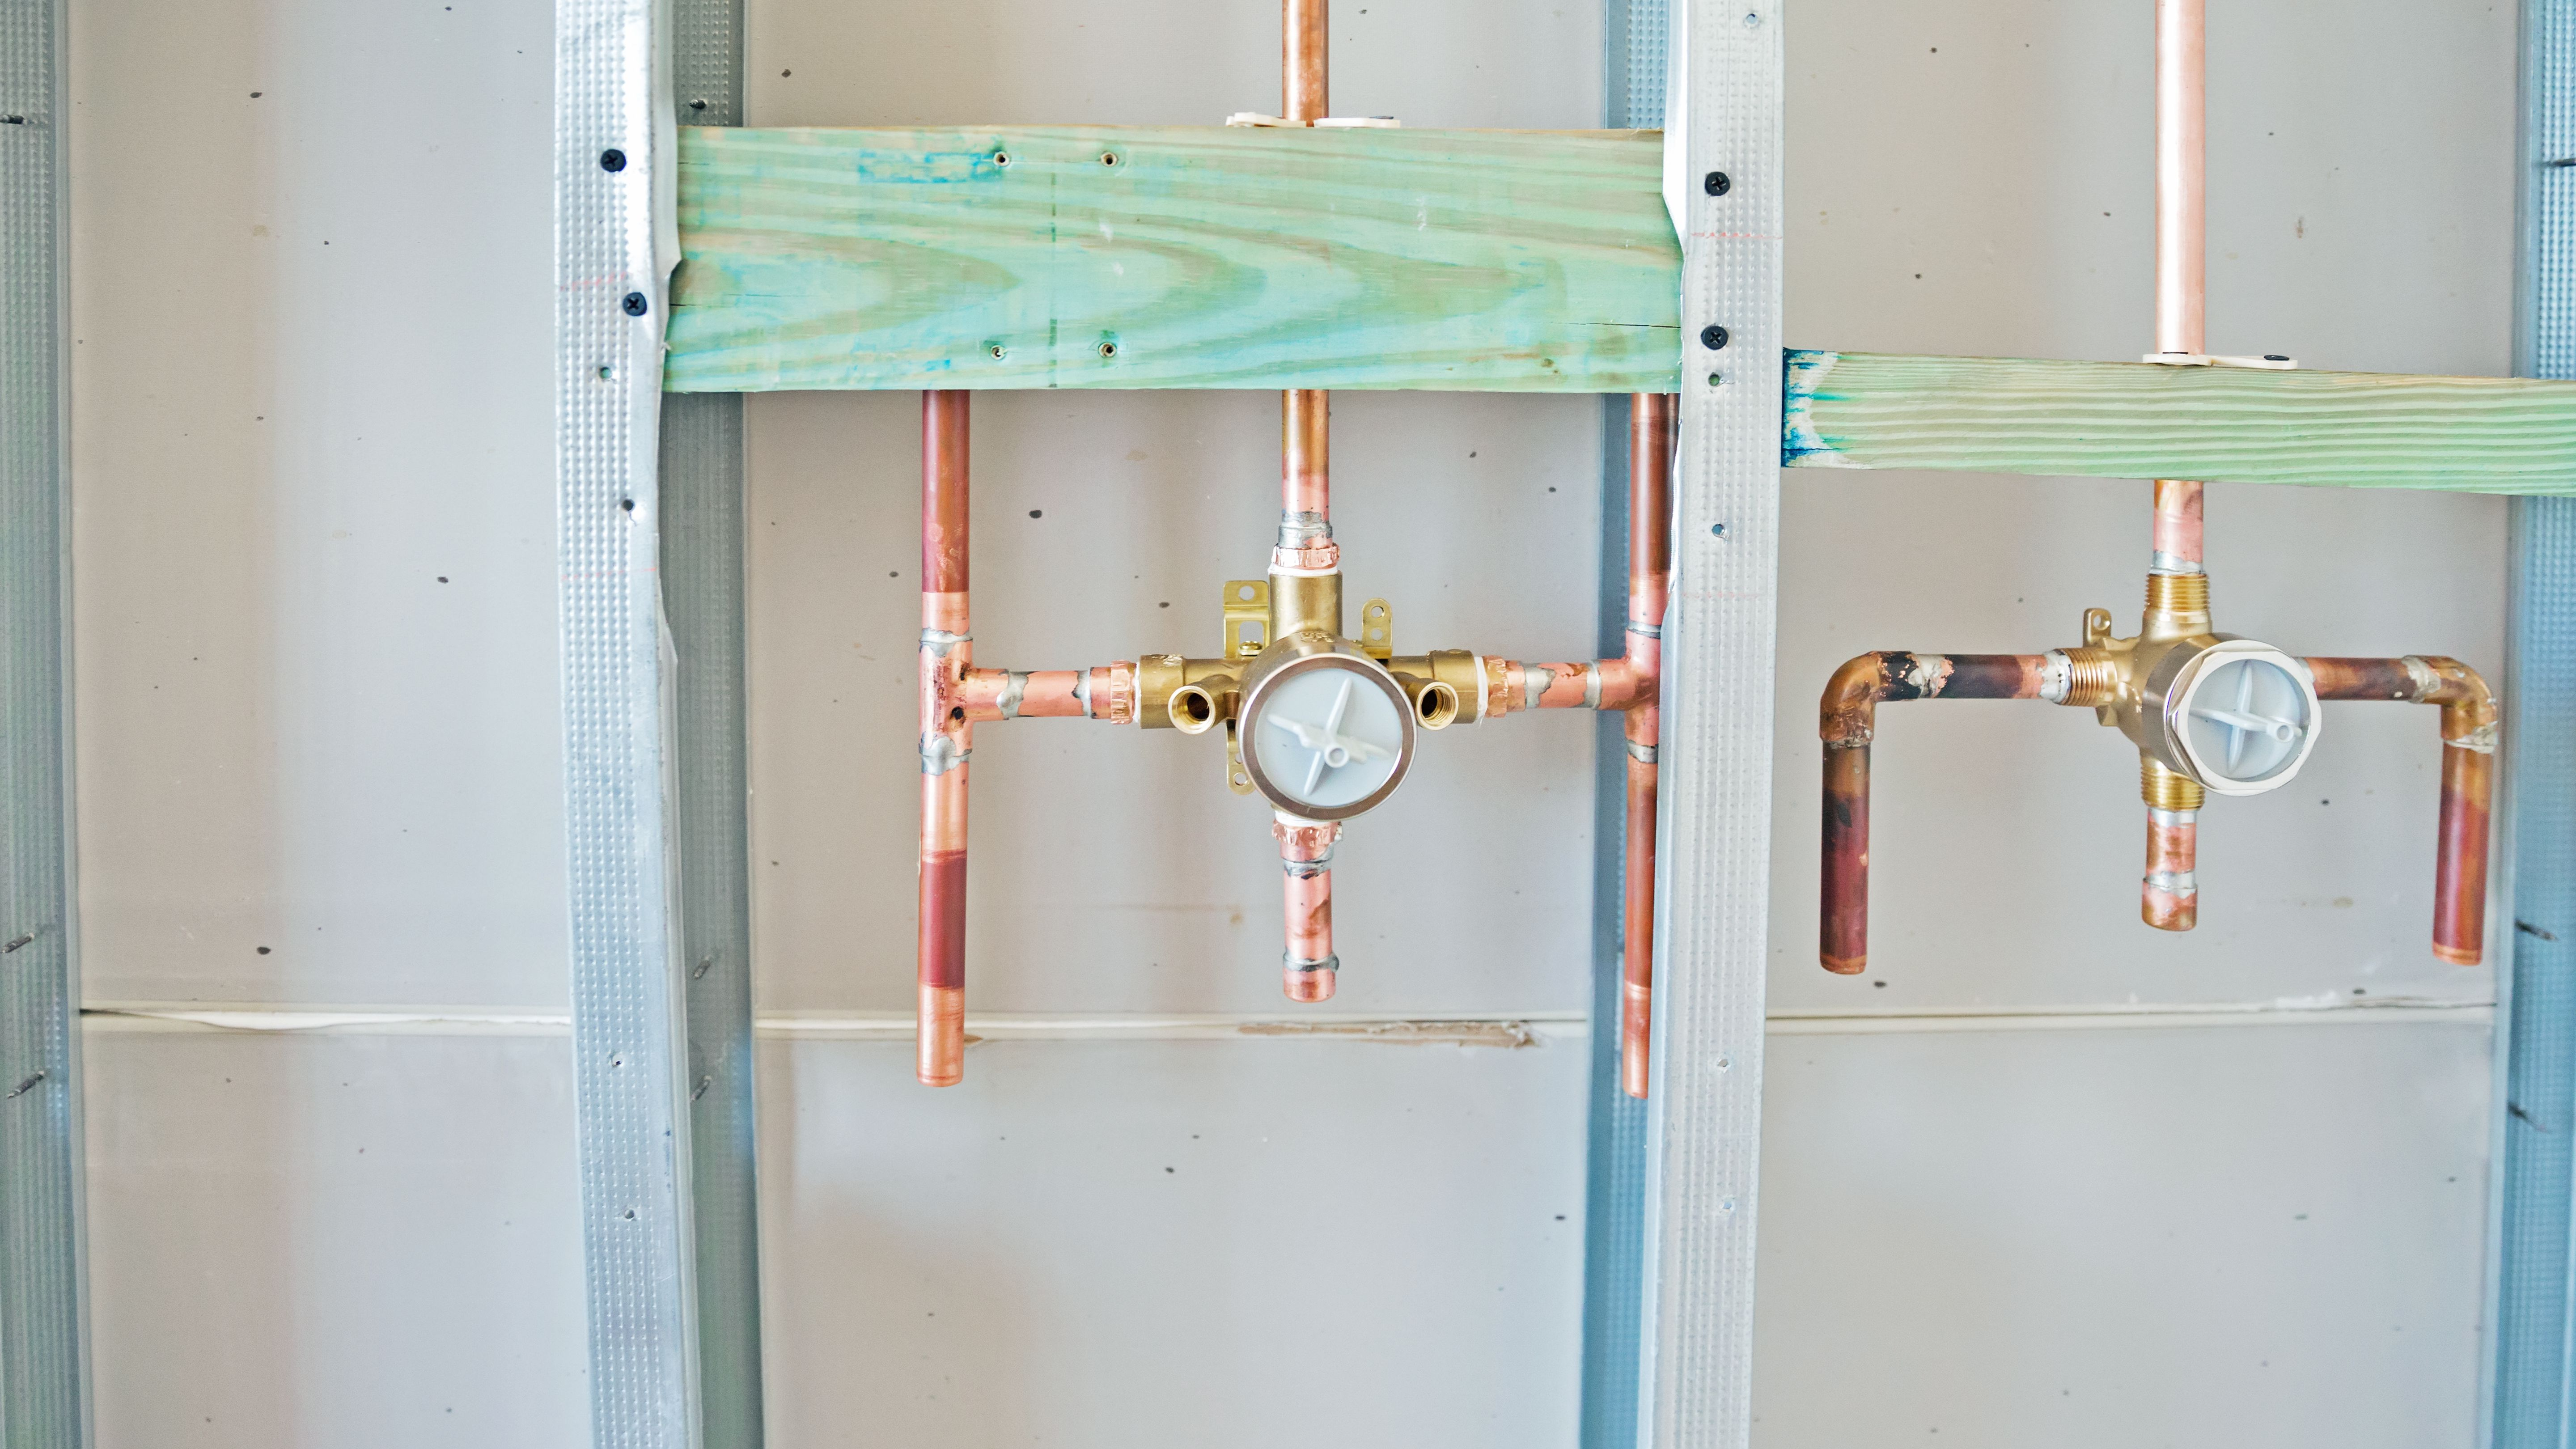 How To Cap A Water Pipe With A Push On Fitting